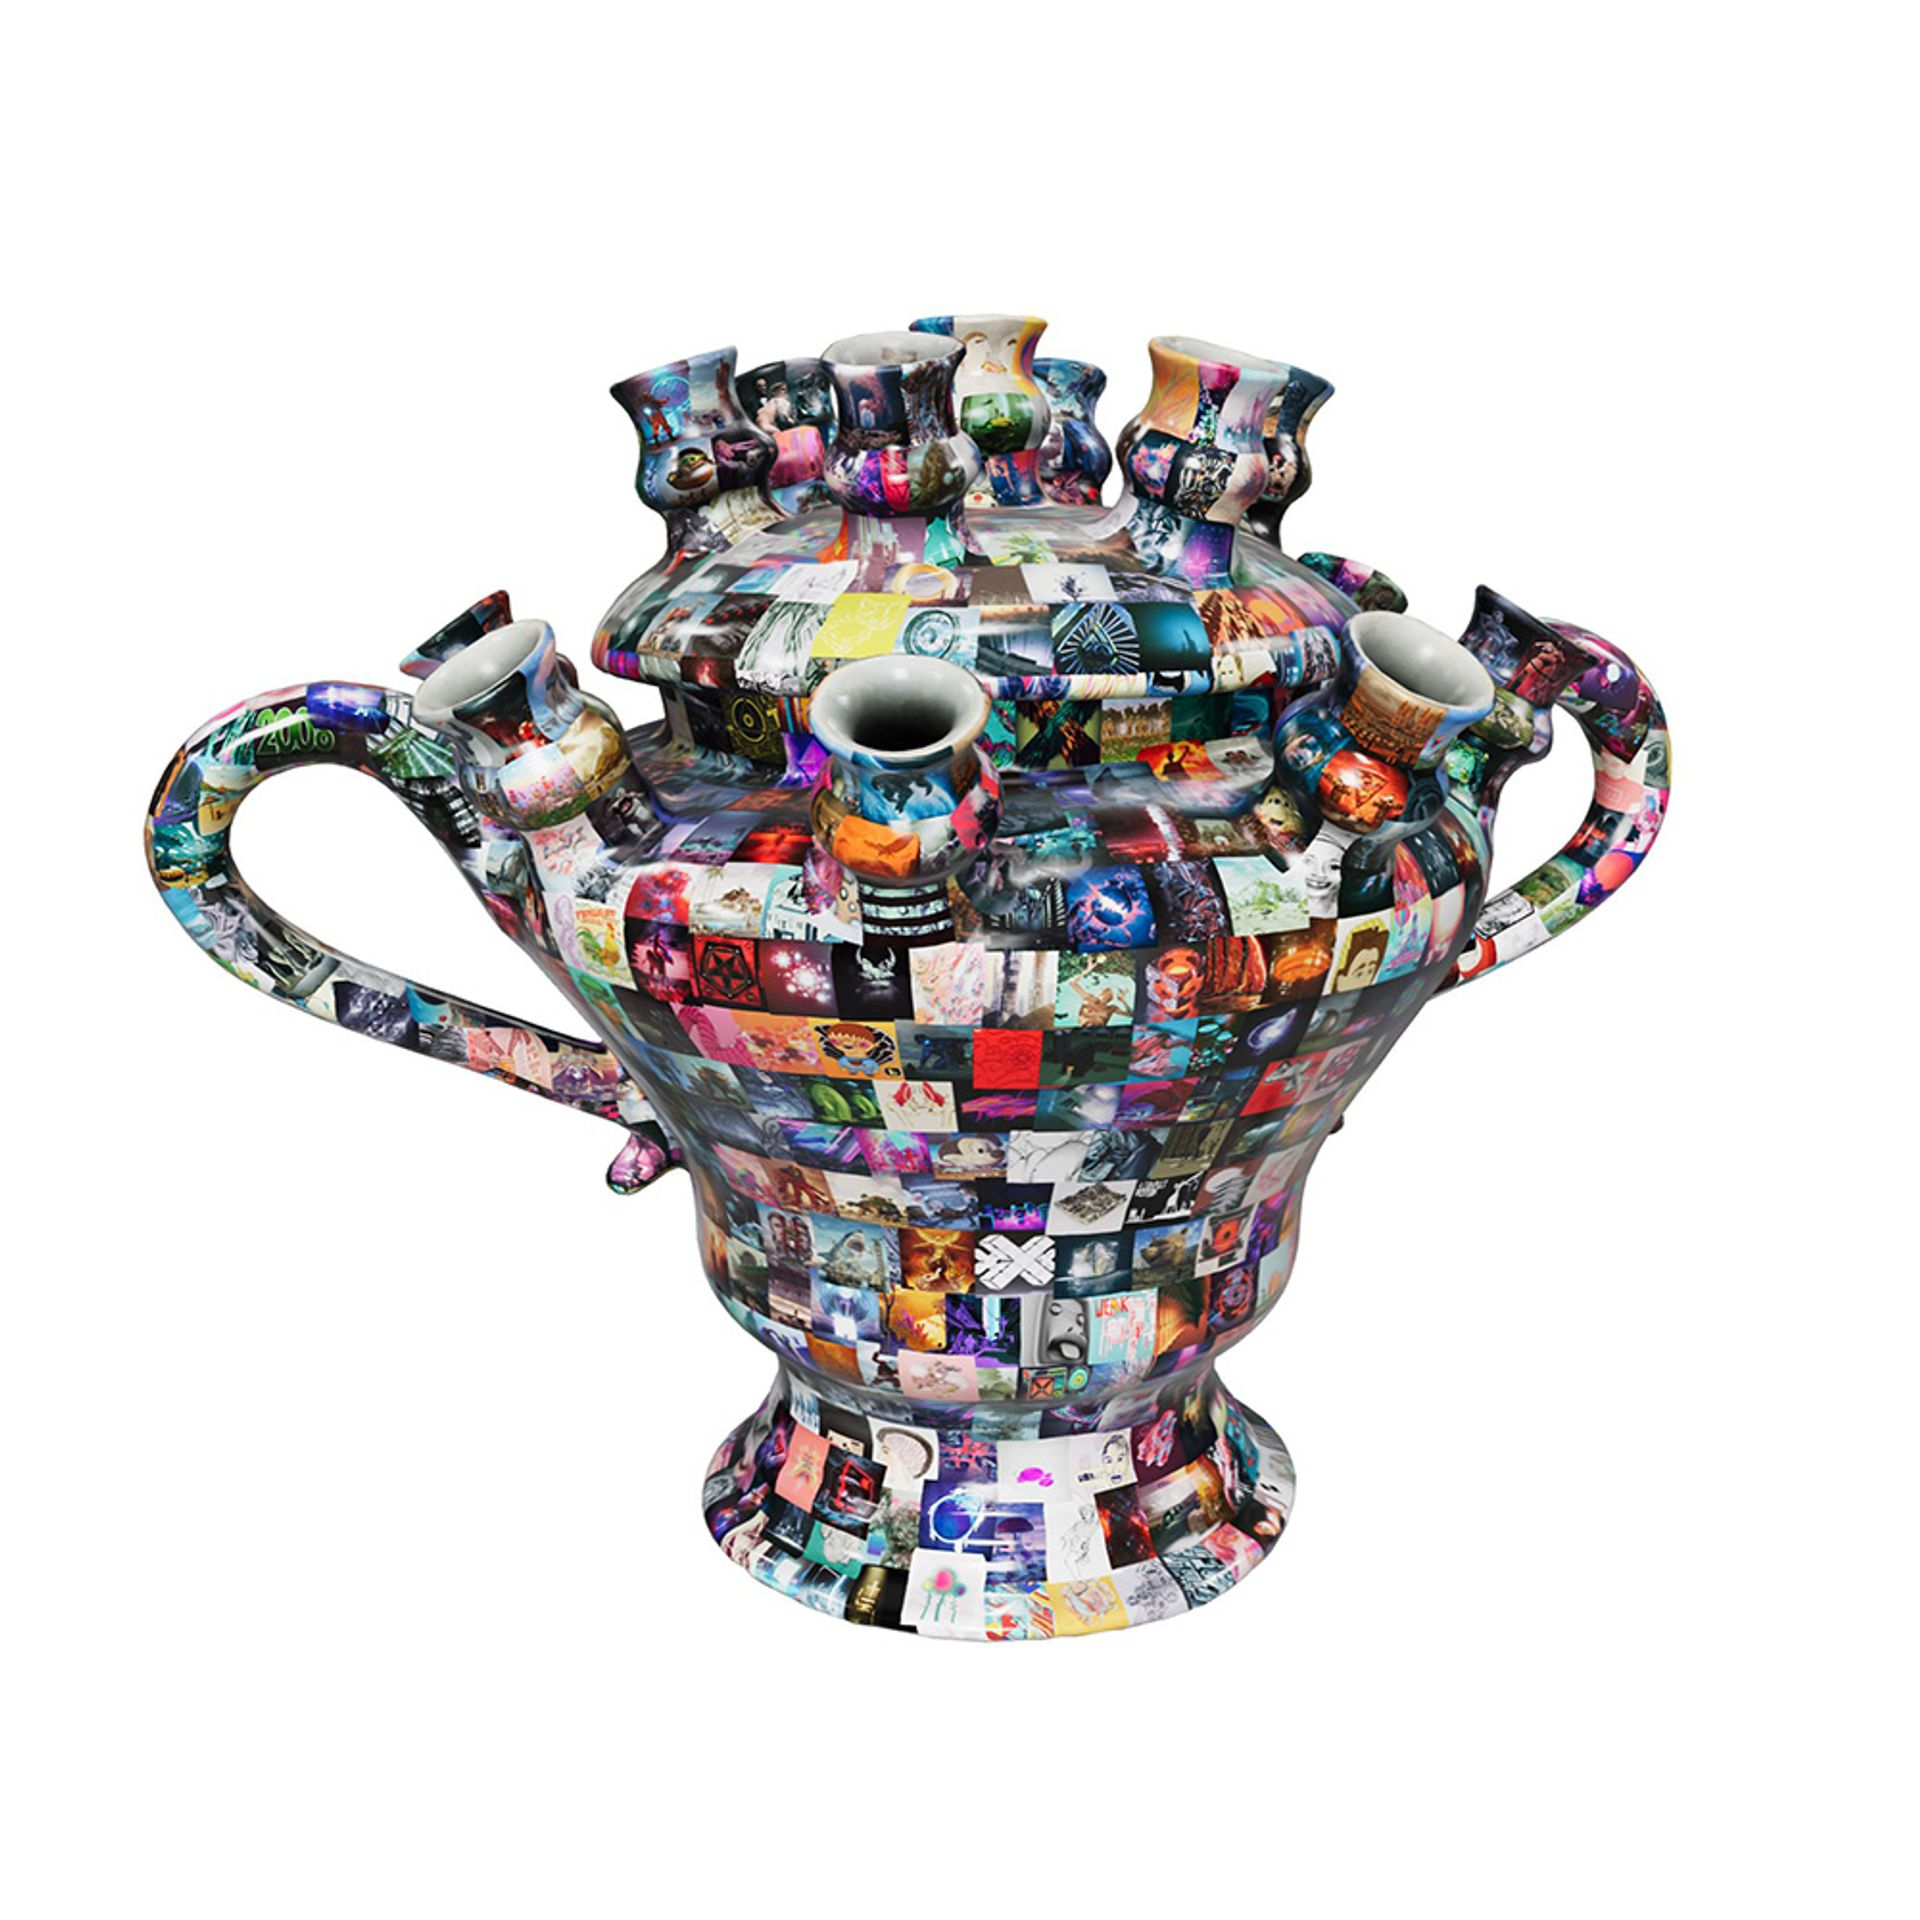 """Aronson's """"digital twin"""" NFT titled $69m Art—with Beeple's Everydays superimposed on a 17th-century Delftware vase—is one of the NFTs minted today on Opensea Courtesy of Aronson Delftware"""